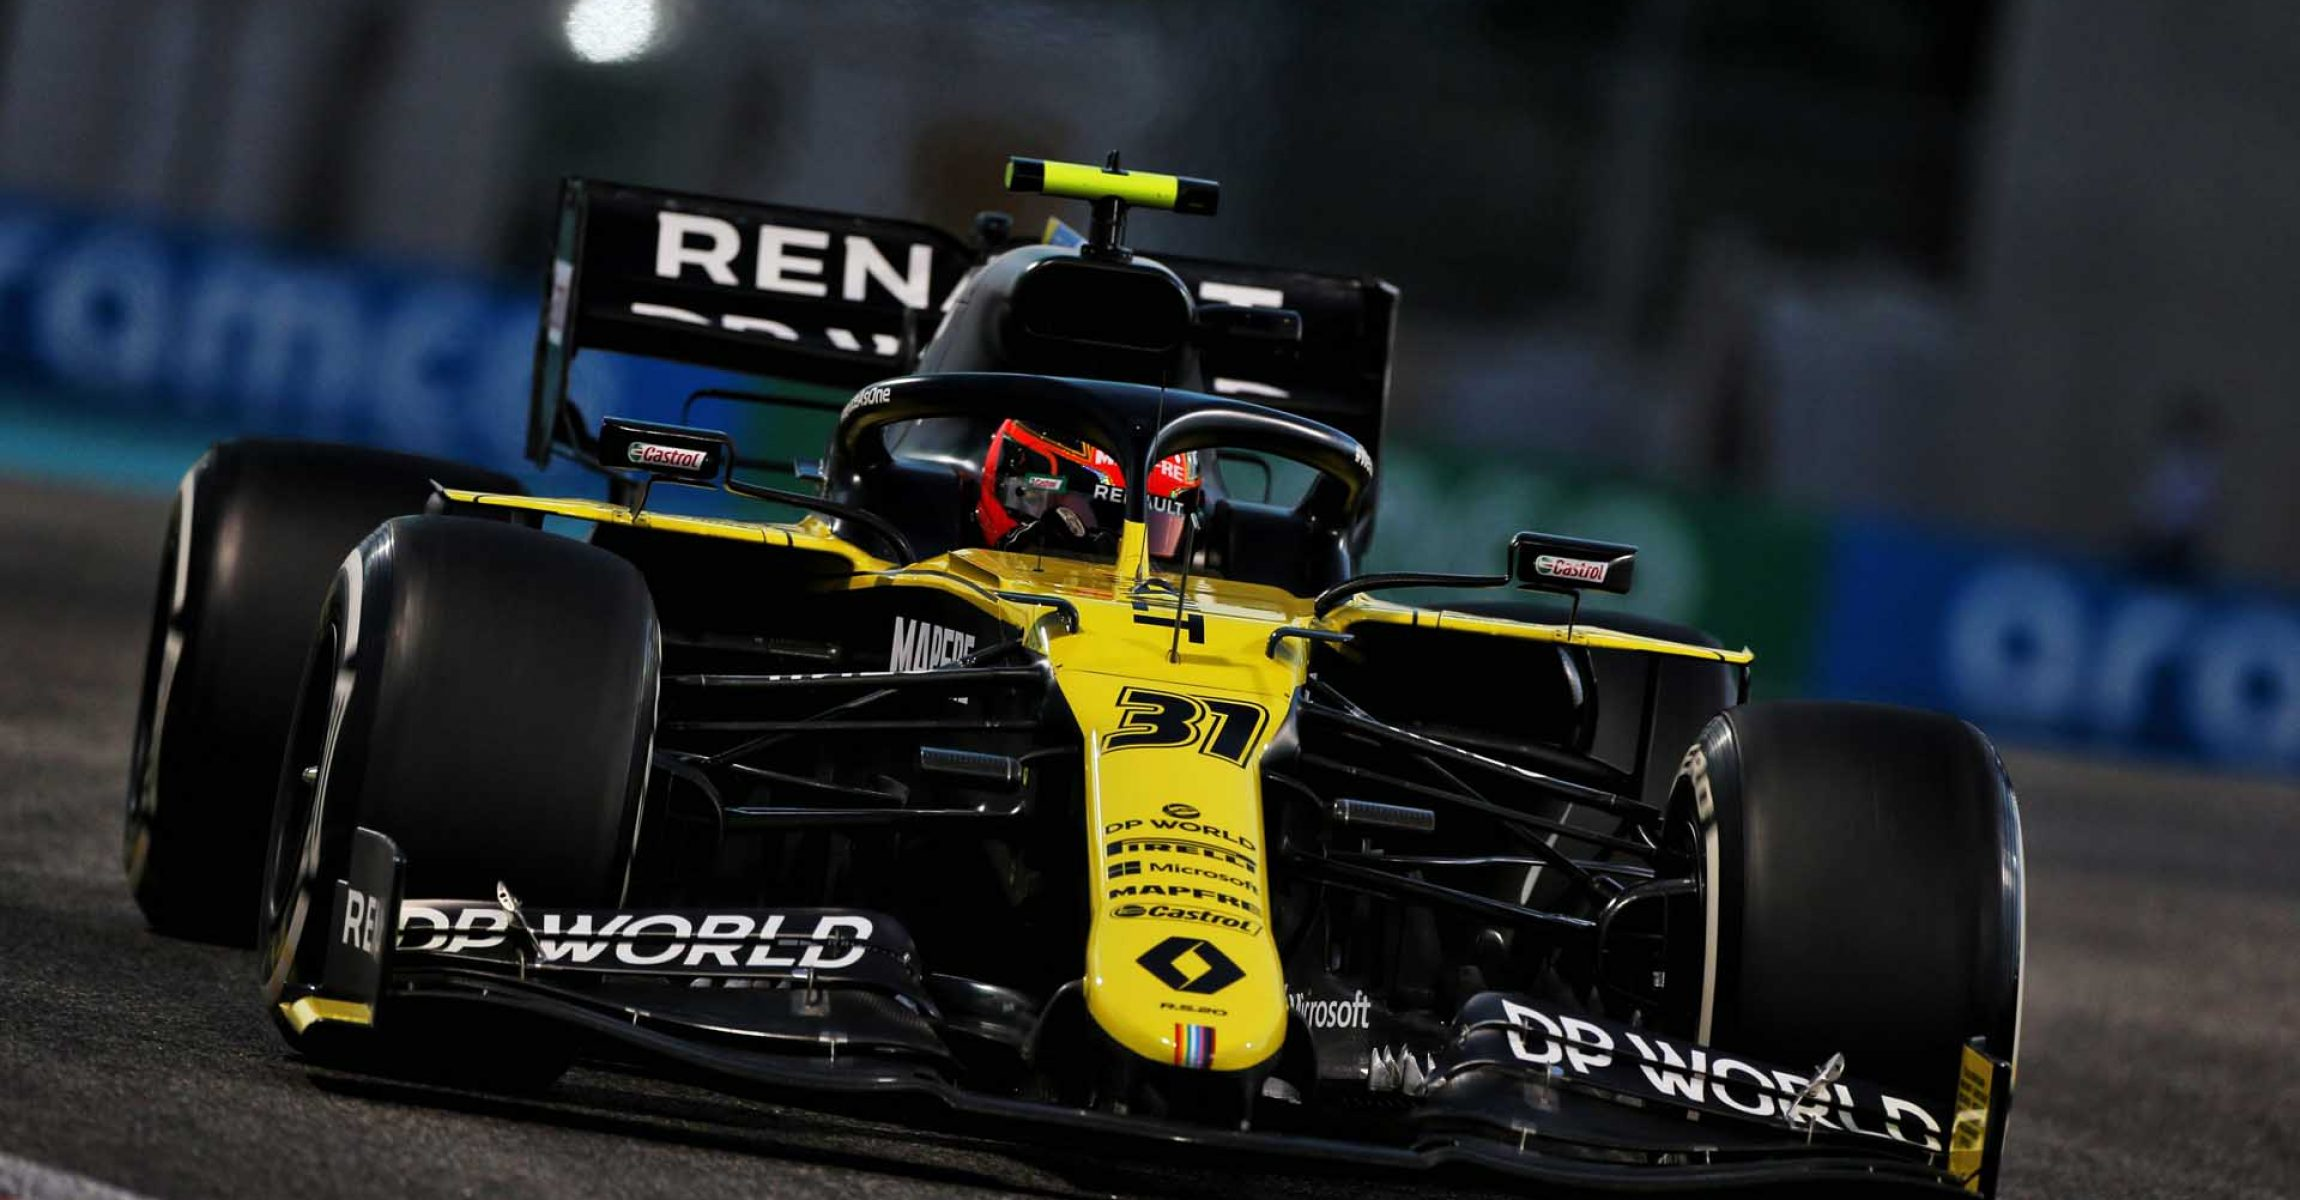 Esteban Ocon (FRA) Renault F1 Team RS20. Abu Dhabi Grand Prix, Friday 11th December 2020. Yas Marina Circuit, Abu Dhabi, UAE.